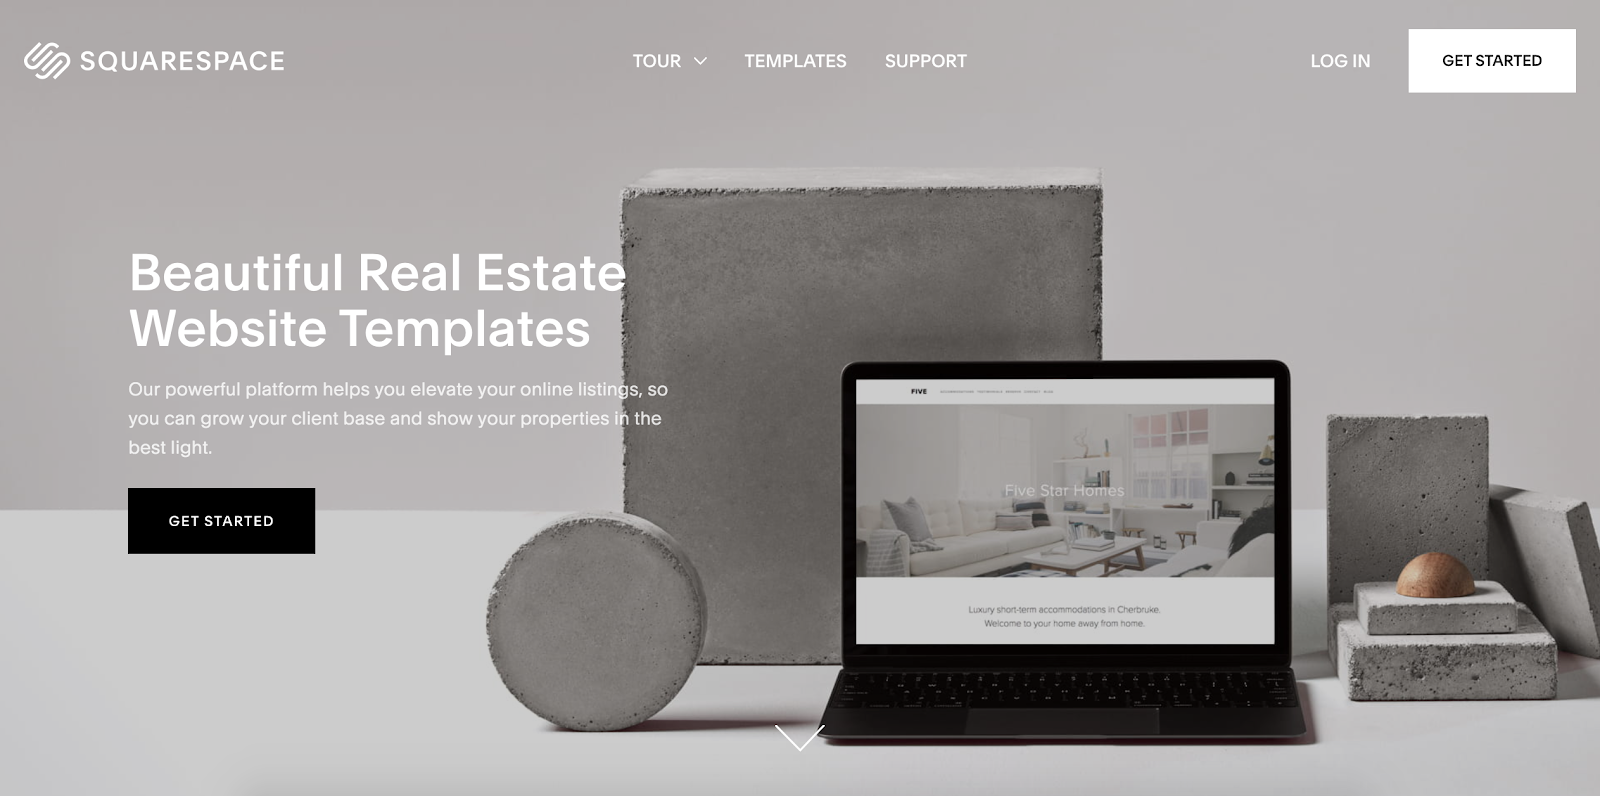 Squarespace Real Estate Templates | Real Estate Marketing Tools